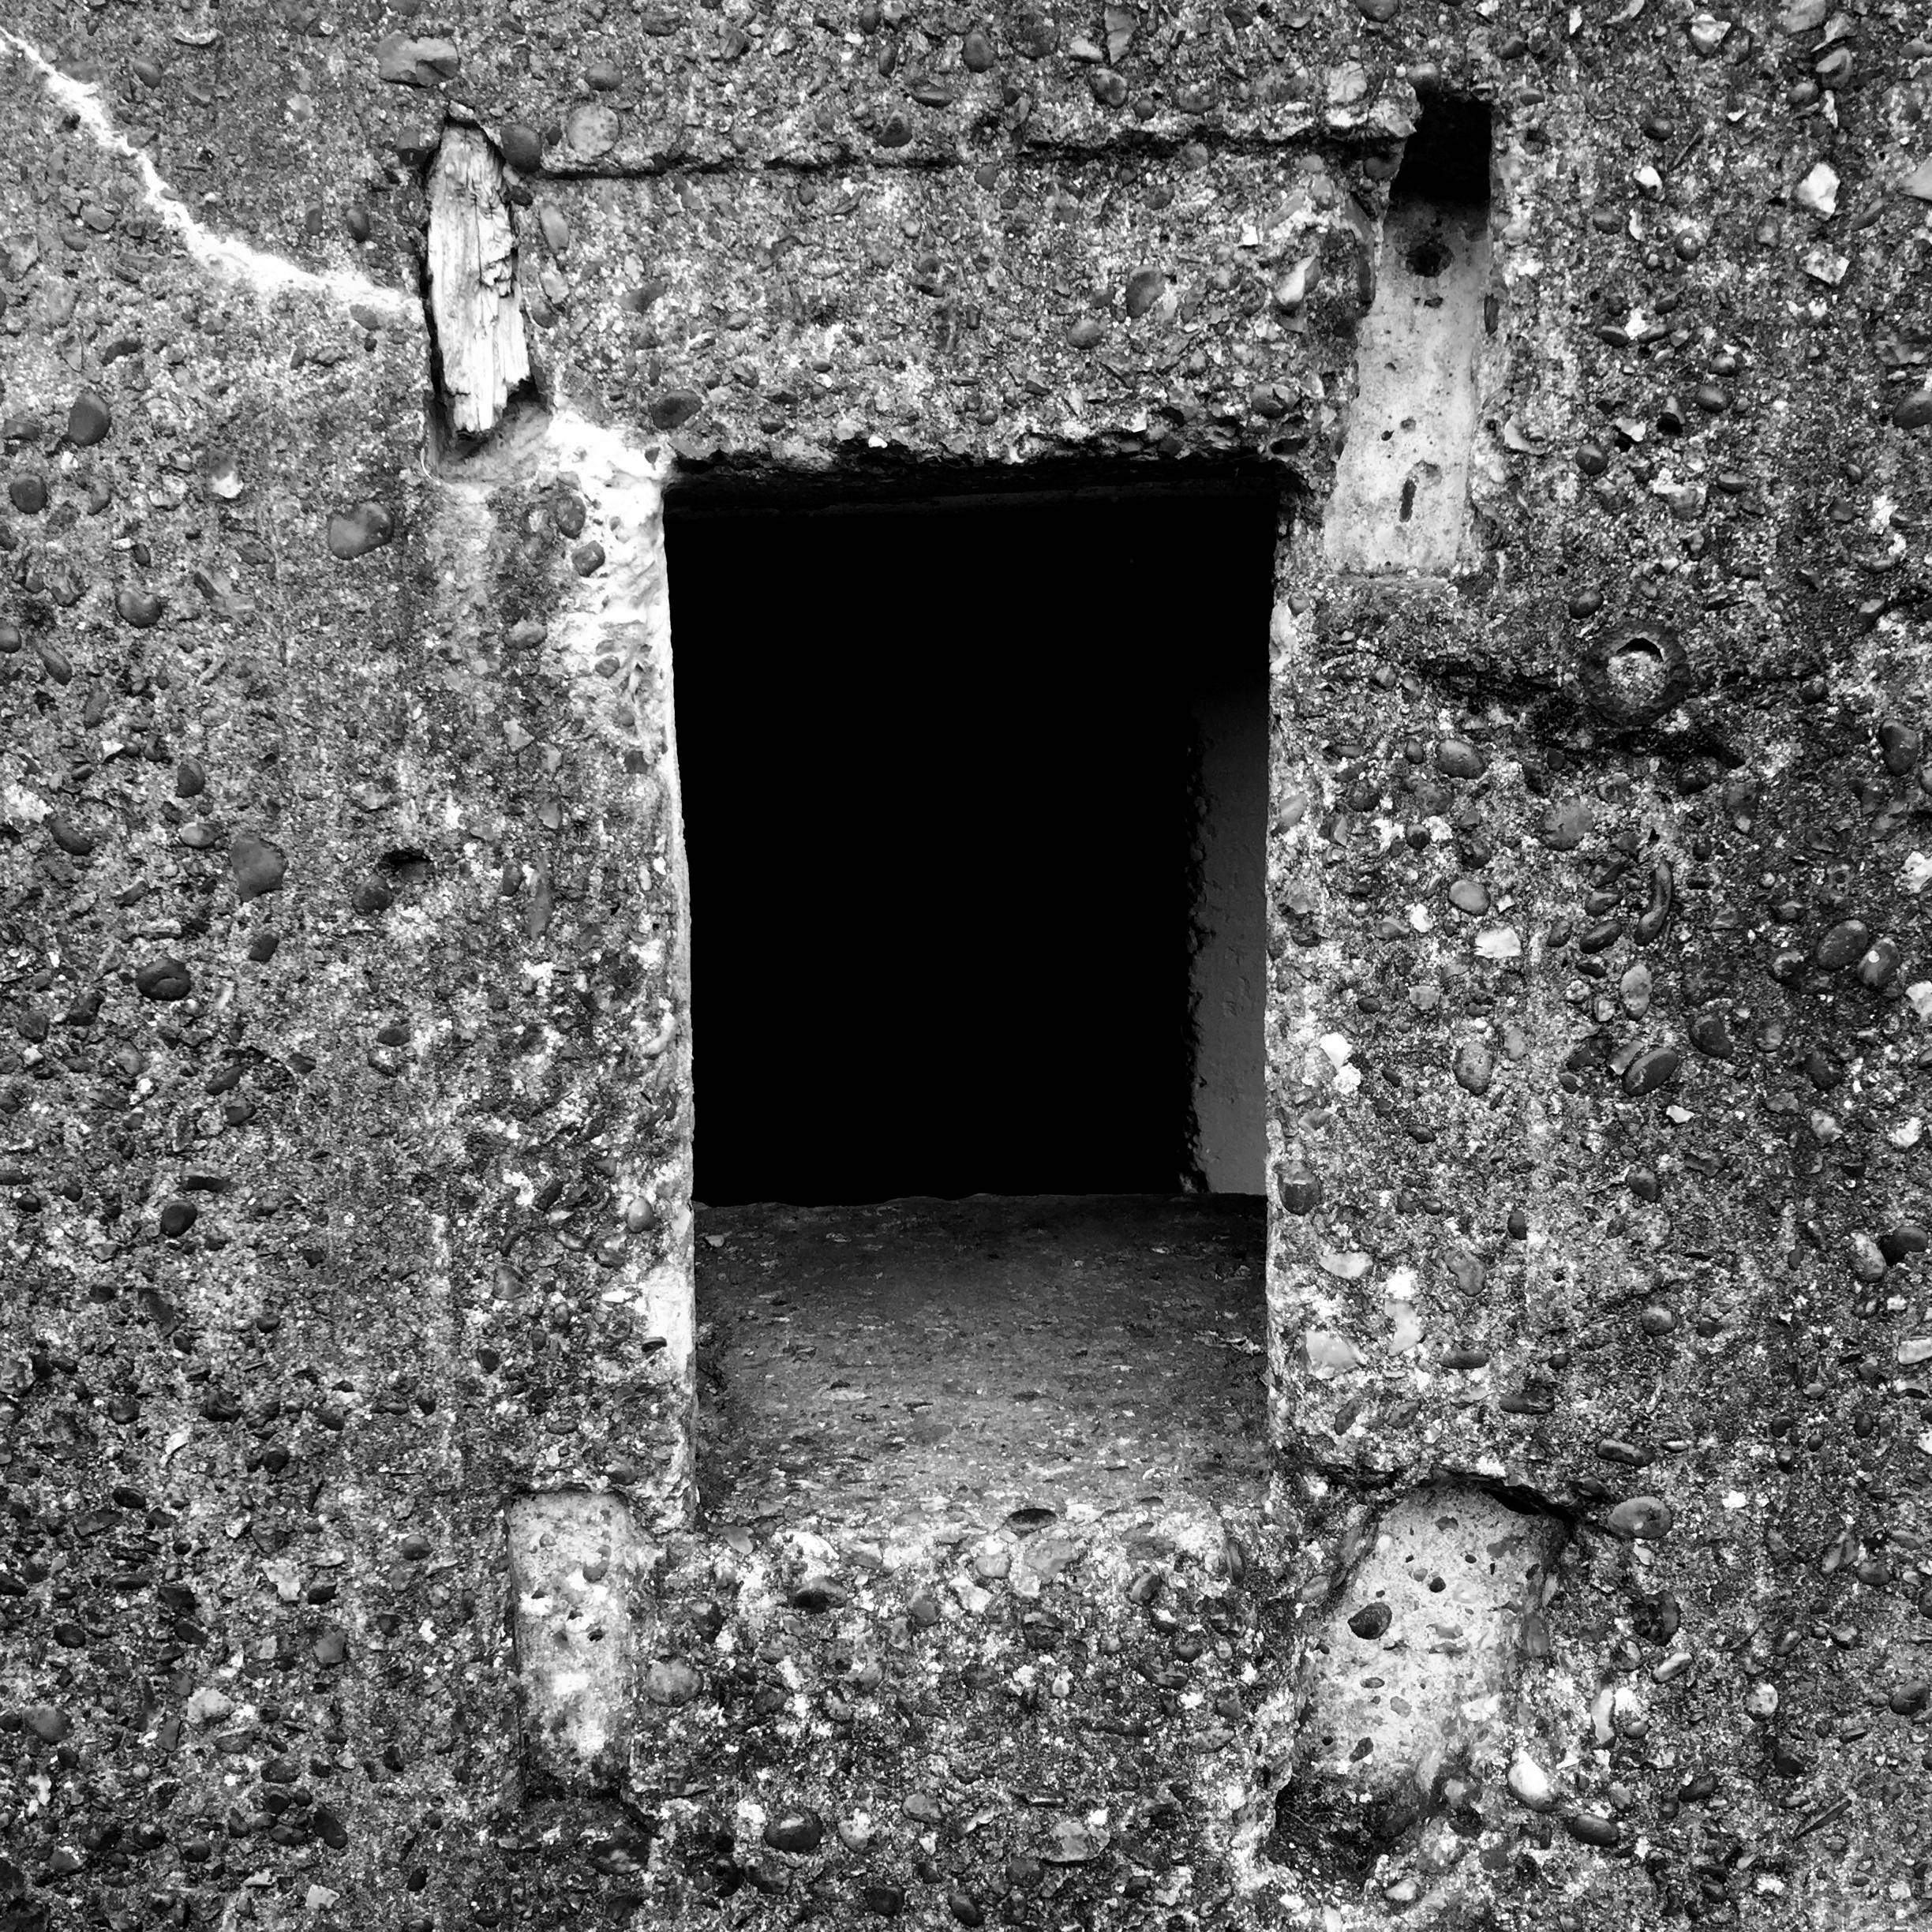 Hornchurch B/W abstract photograph